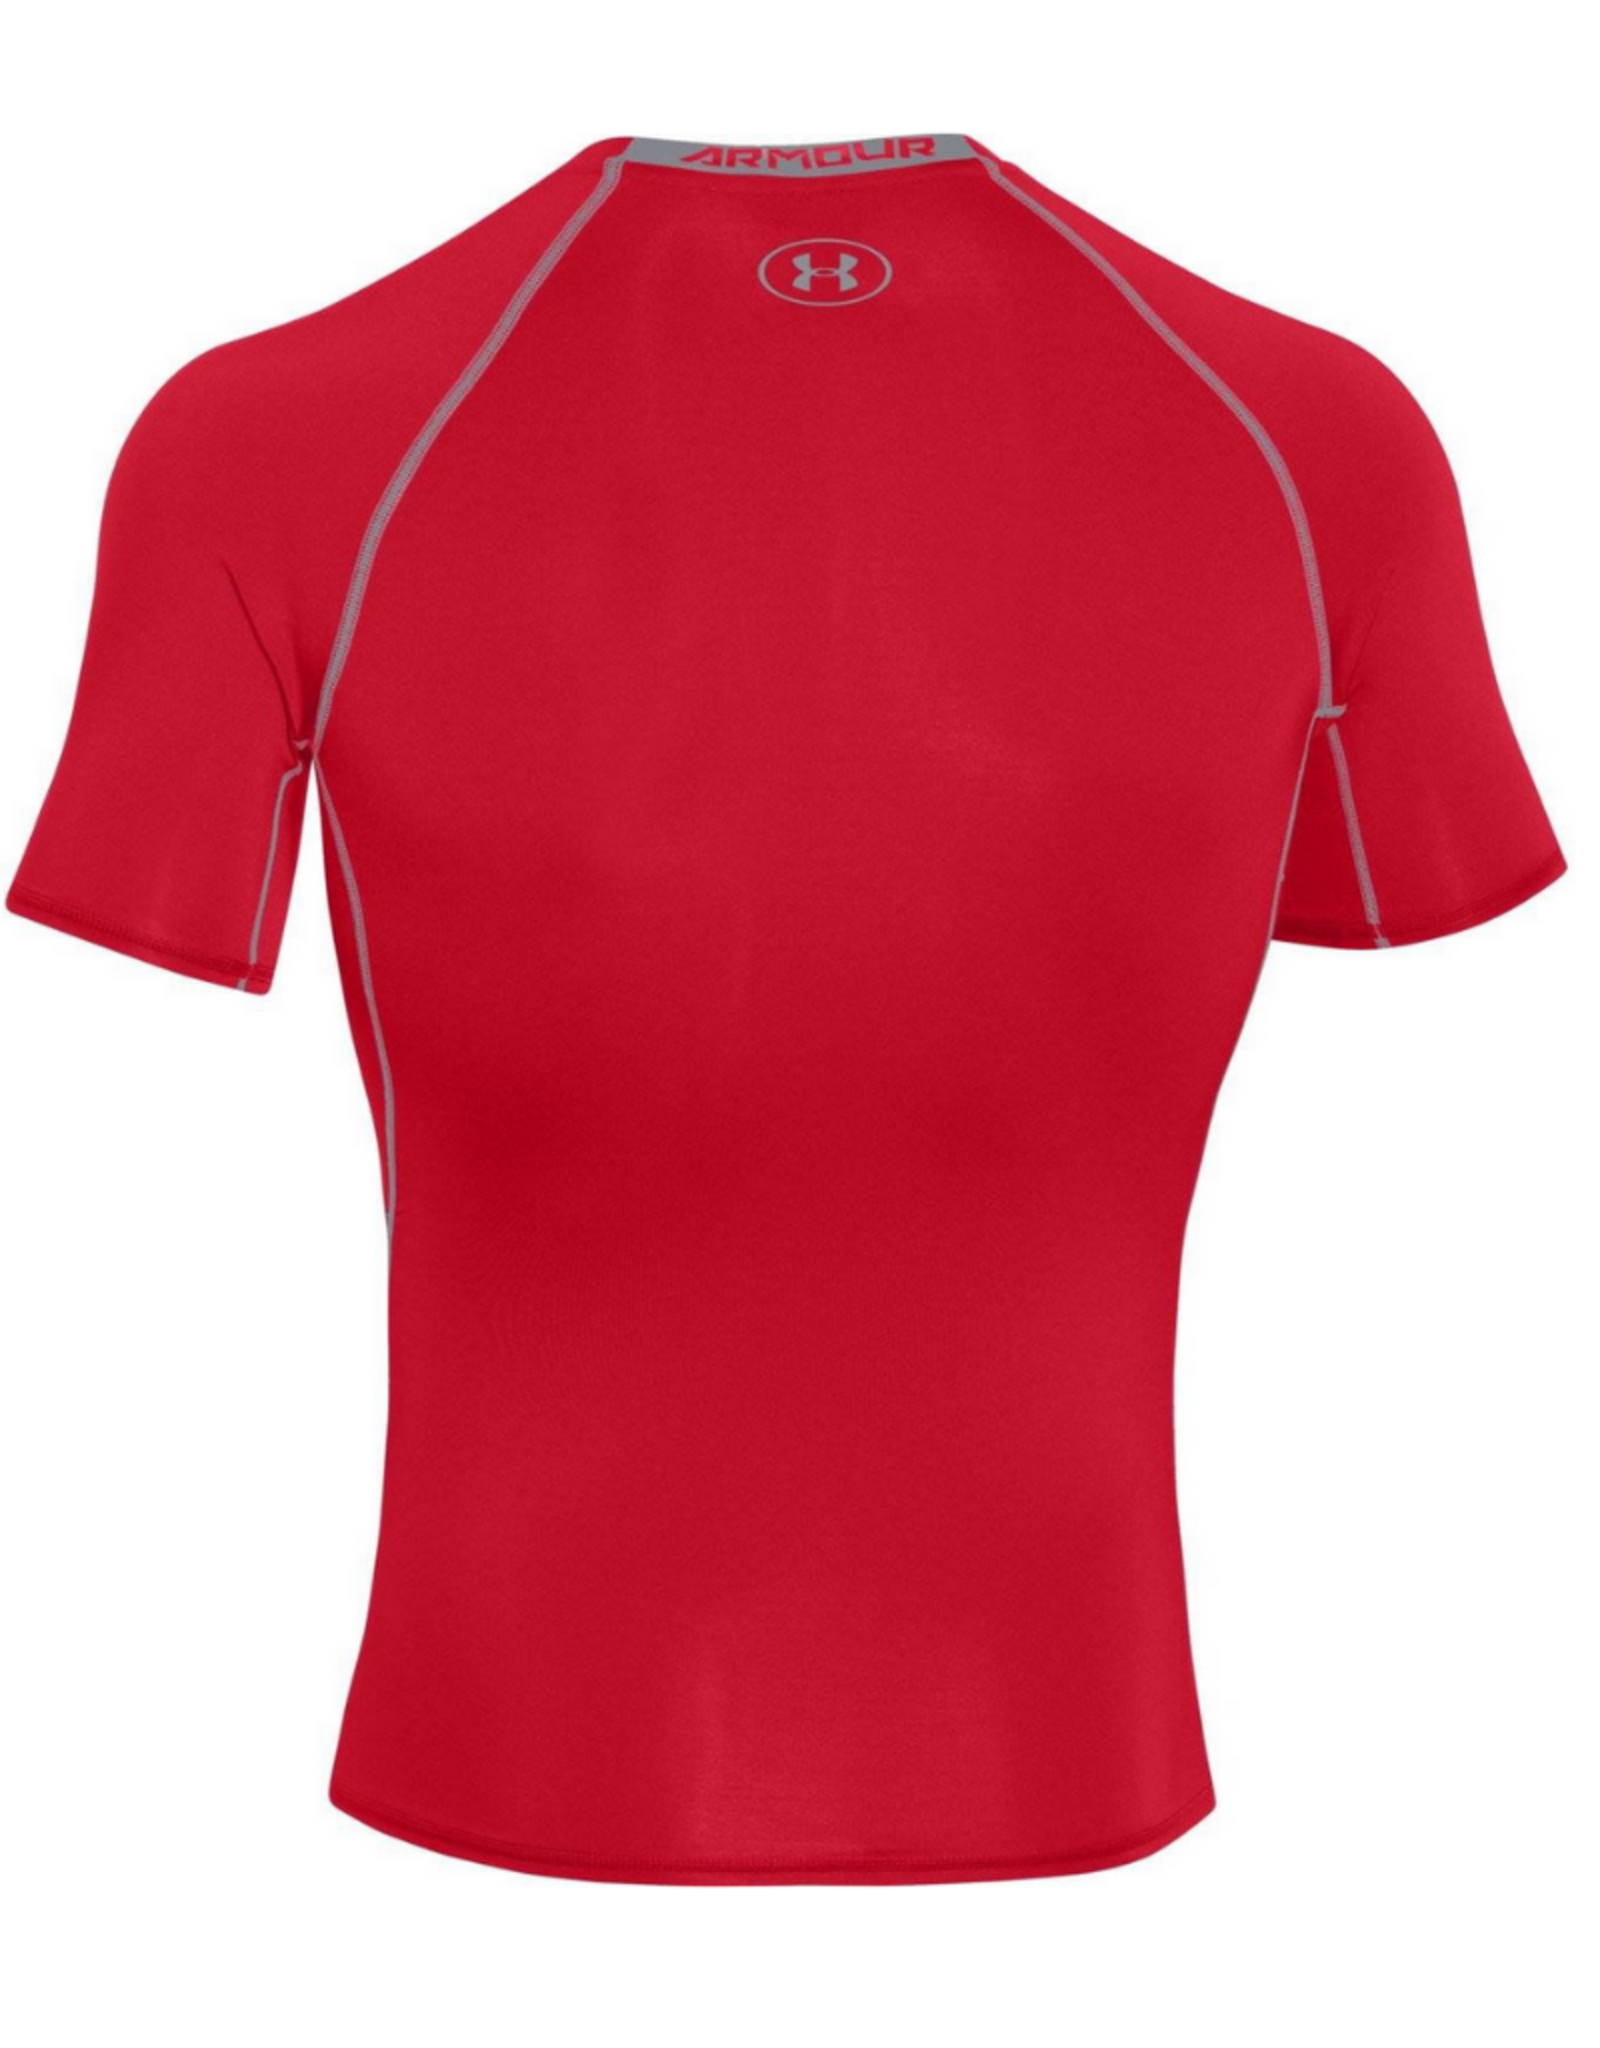 Under Armour Compression T-Shirt Red